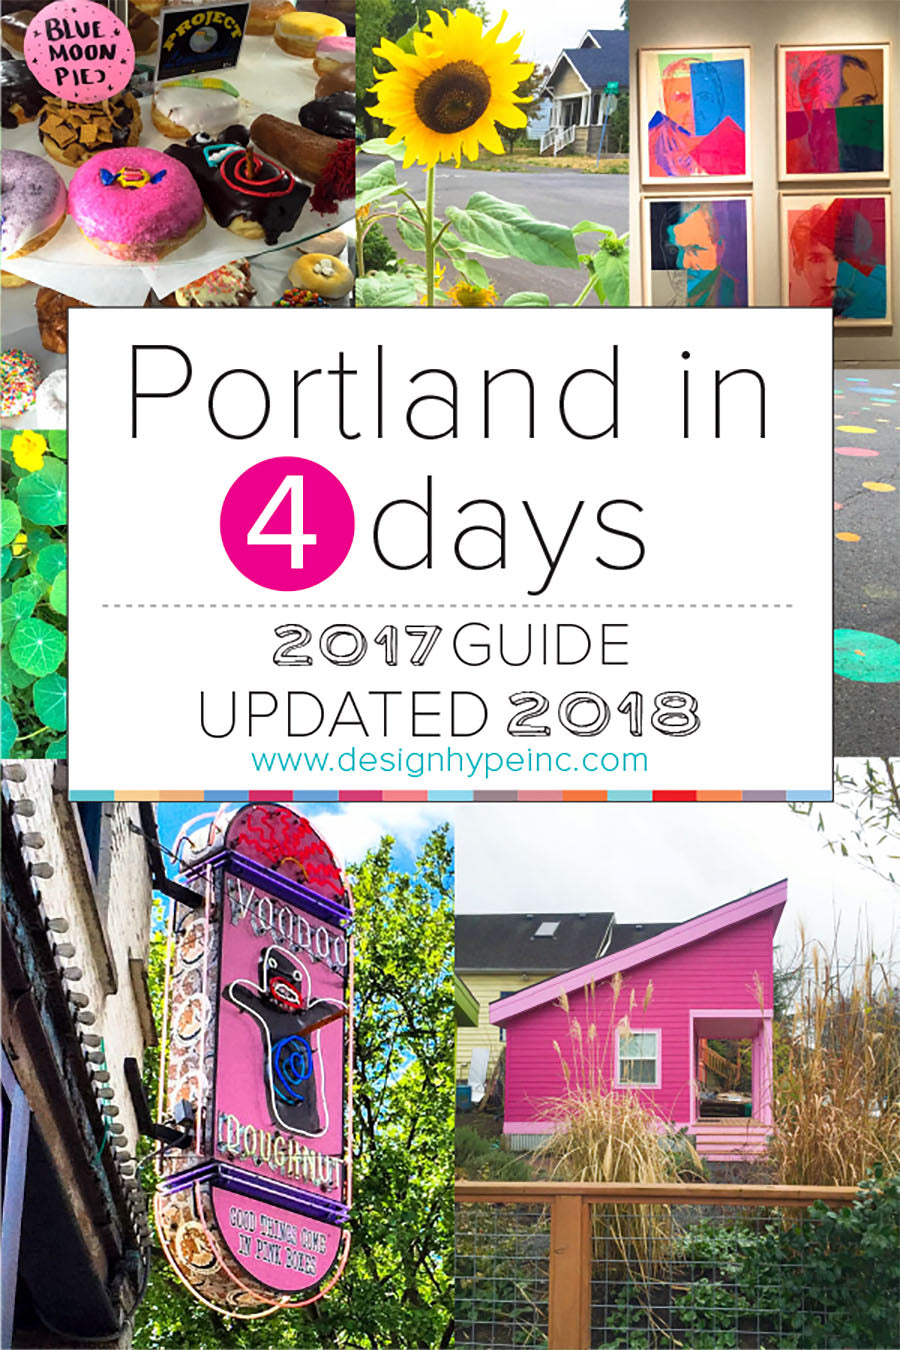 Portland in 4 days Travel Guide 2018